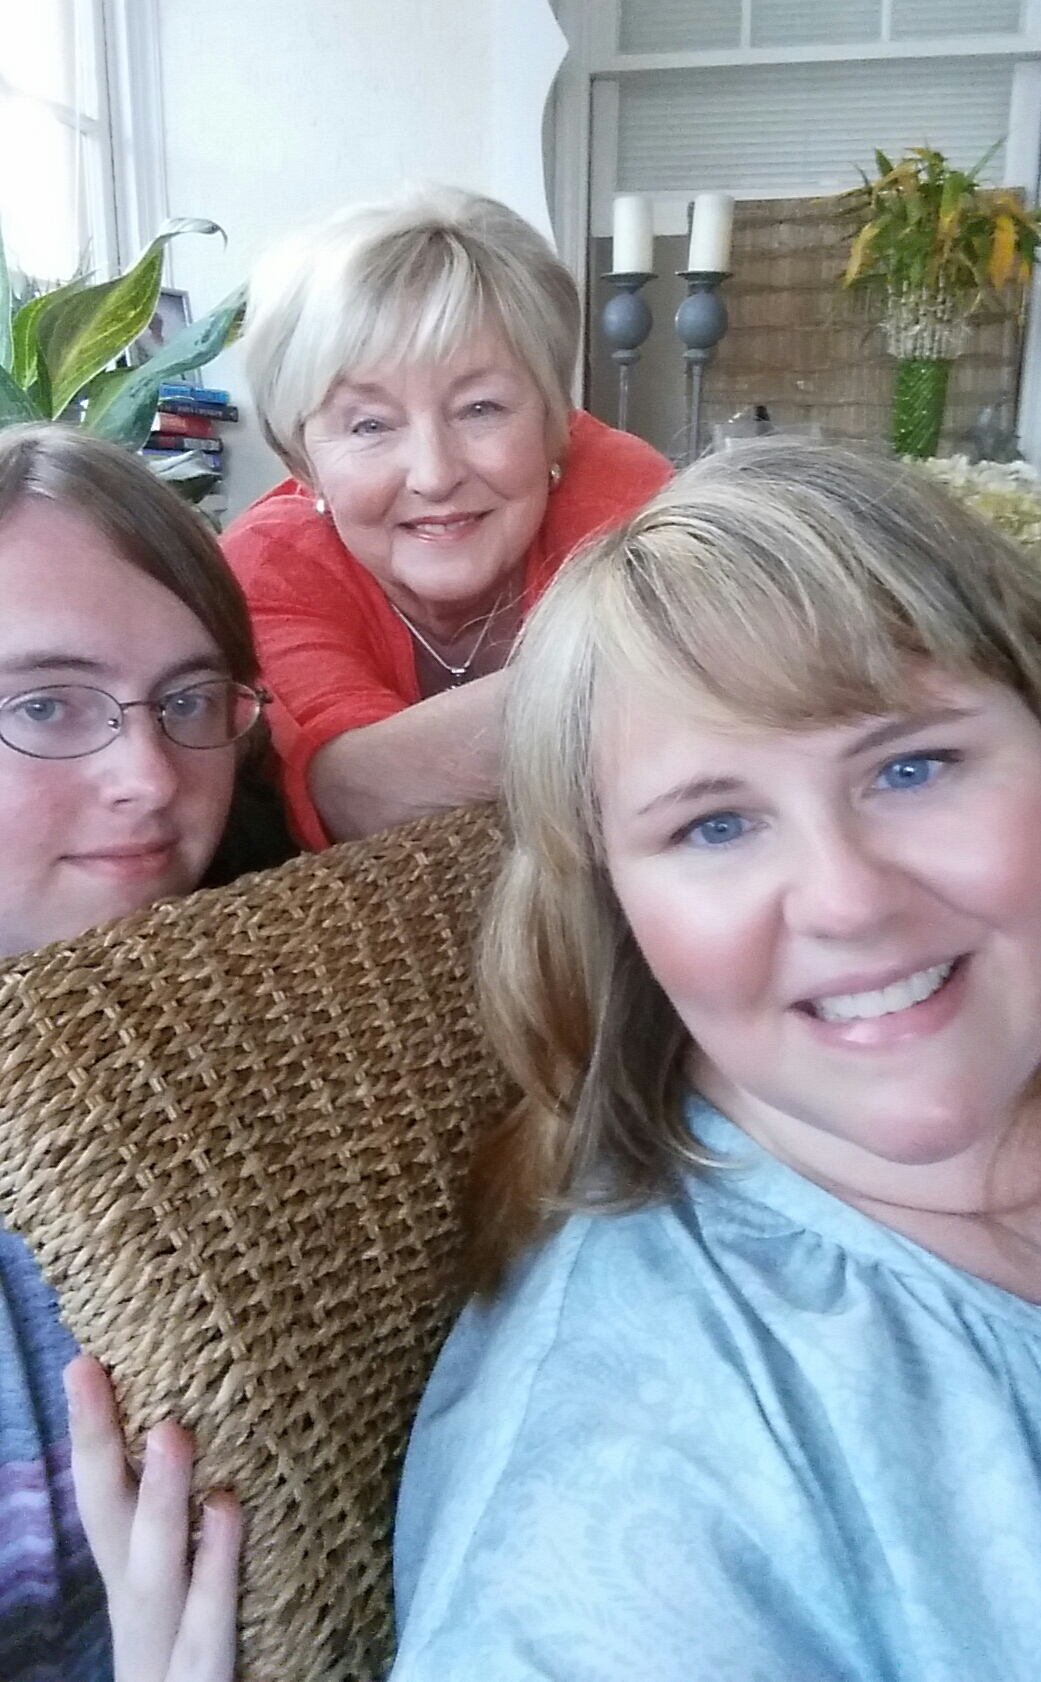 On the Porch Selfies